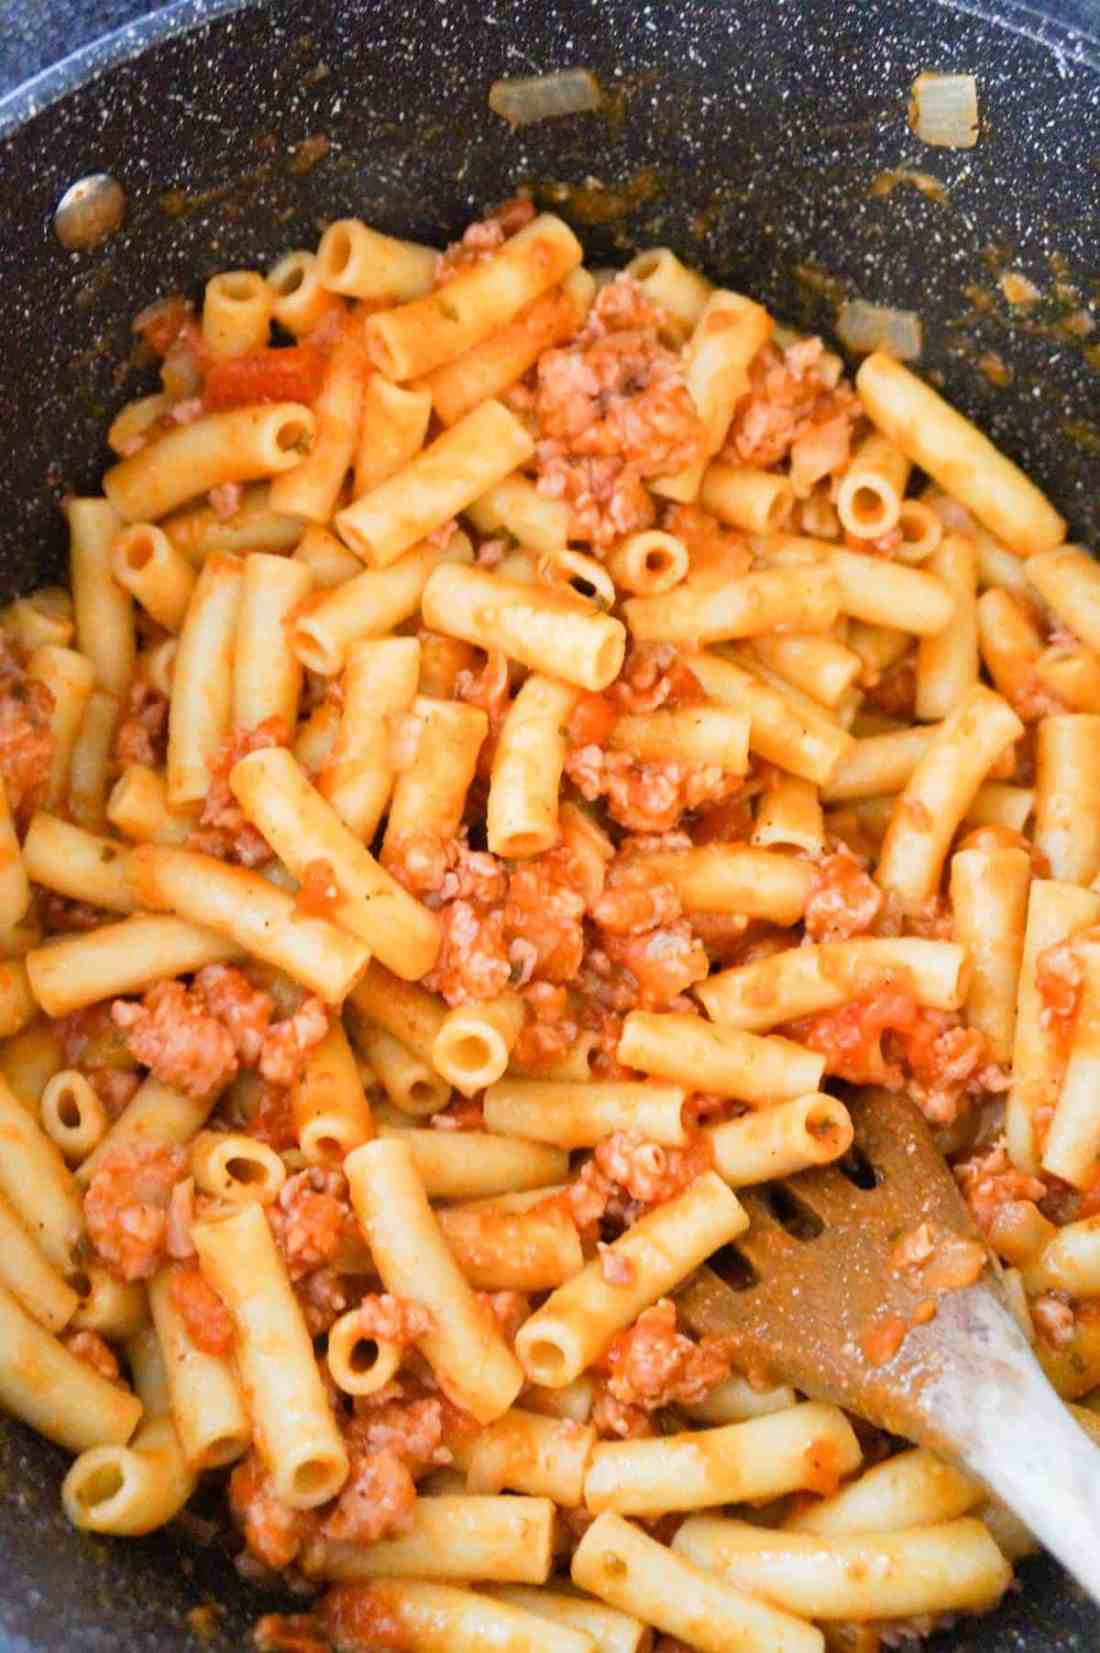 ziti with ground sausage meat in a large pot